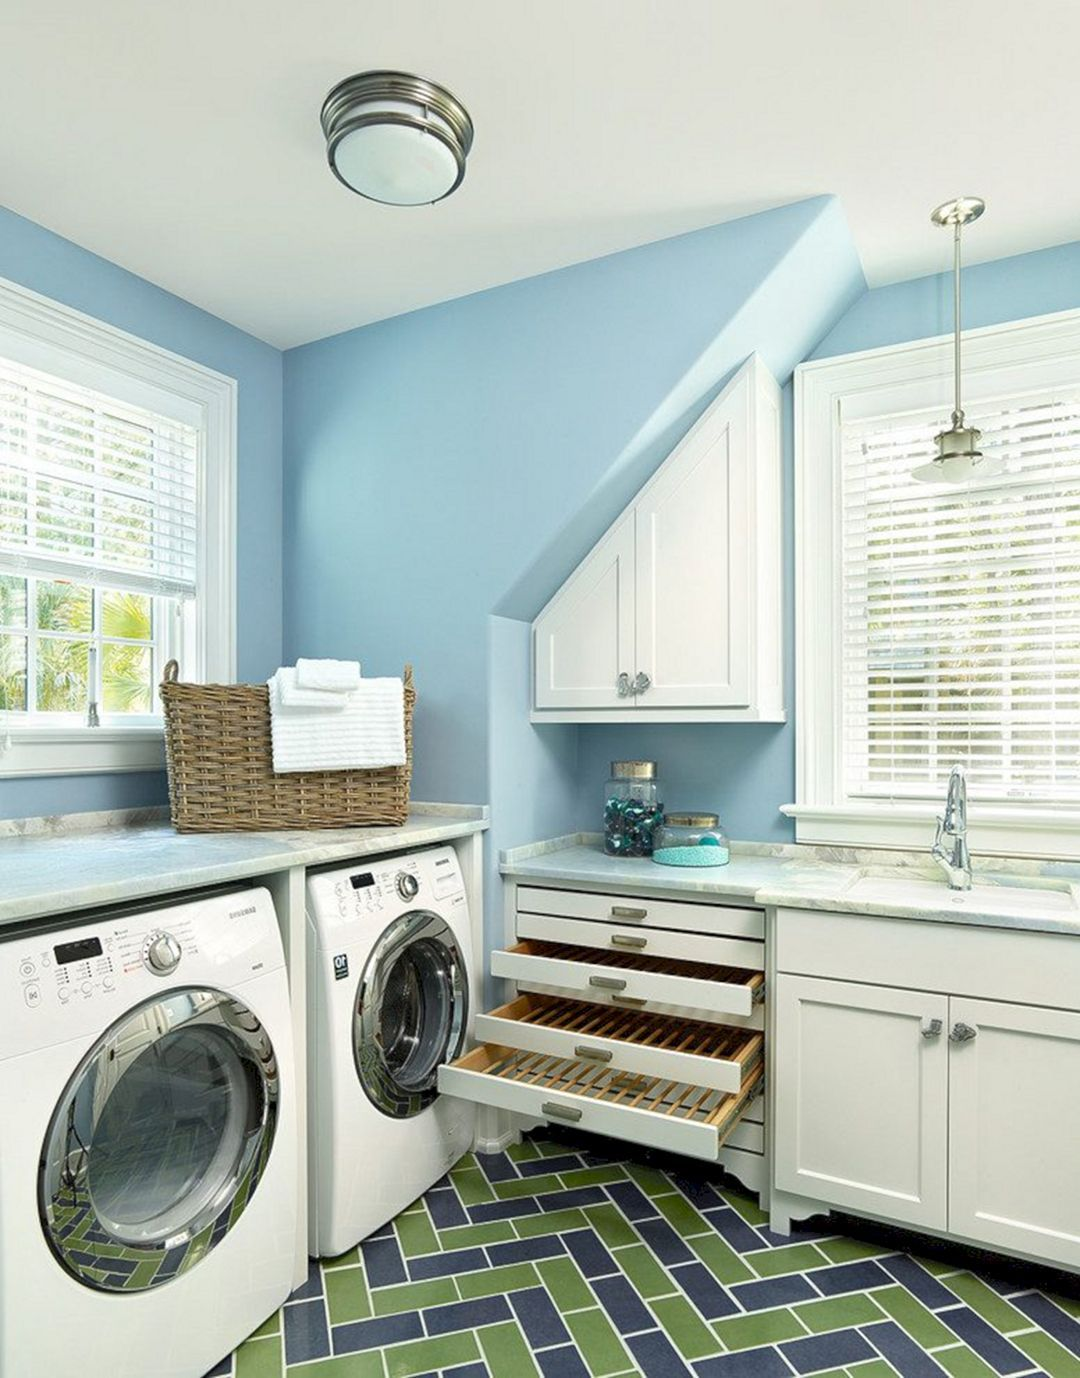 15 most creative laundry room design and decor ideas on extraordinary small laundry room design and decorating ideas modest laundry space id=63435